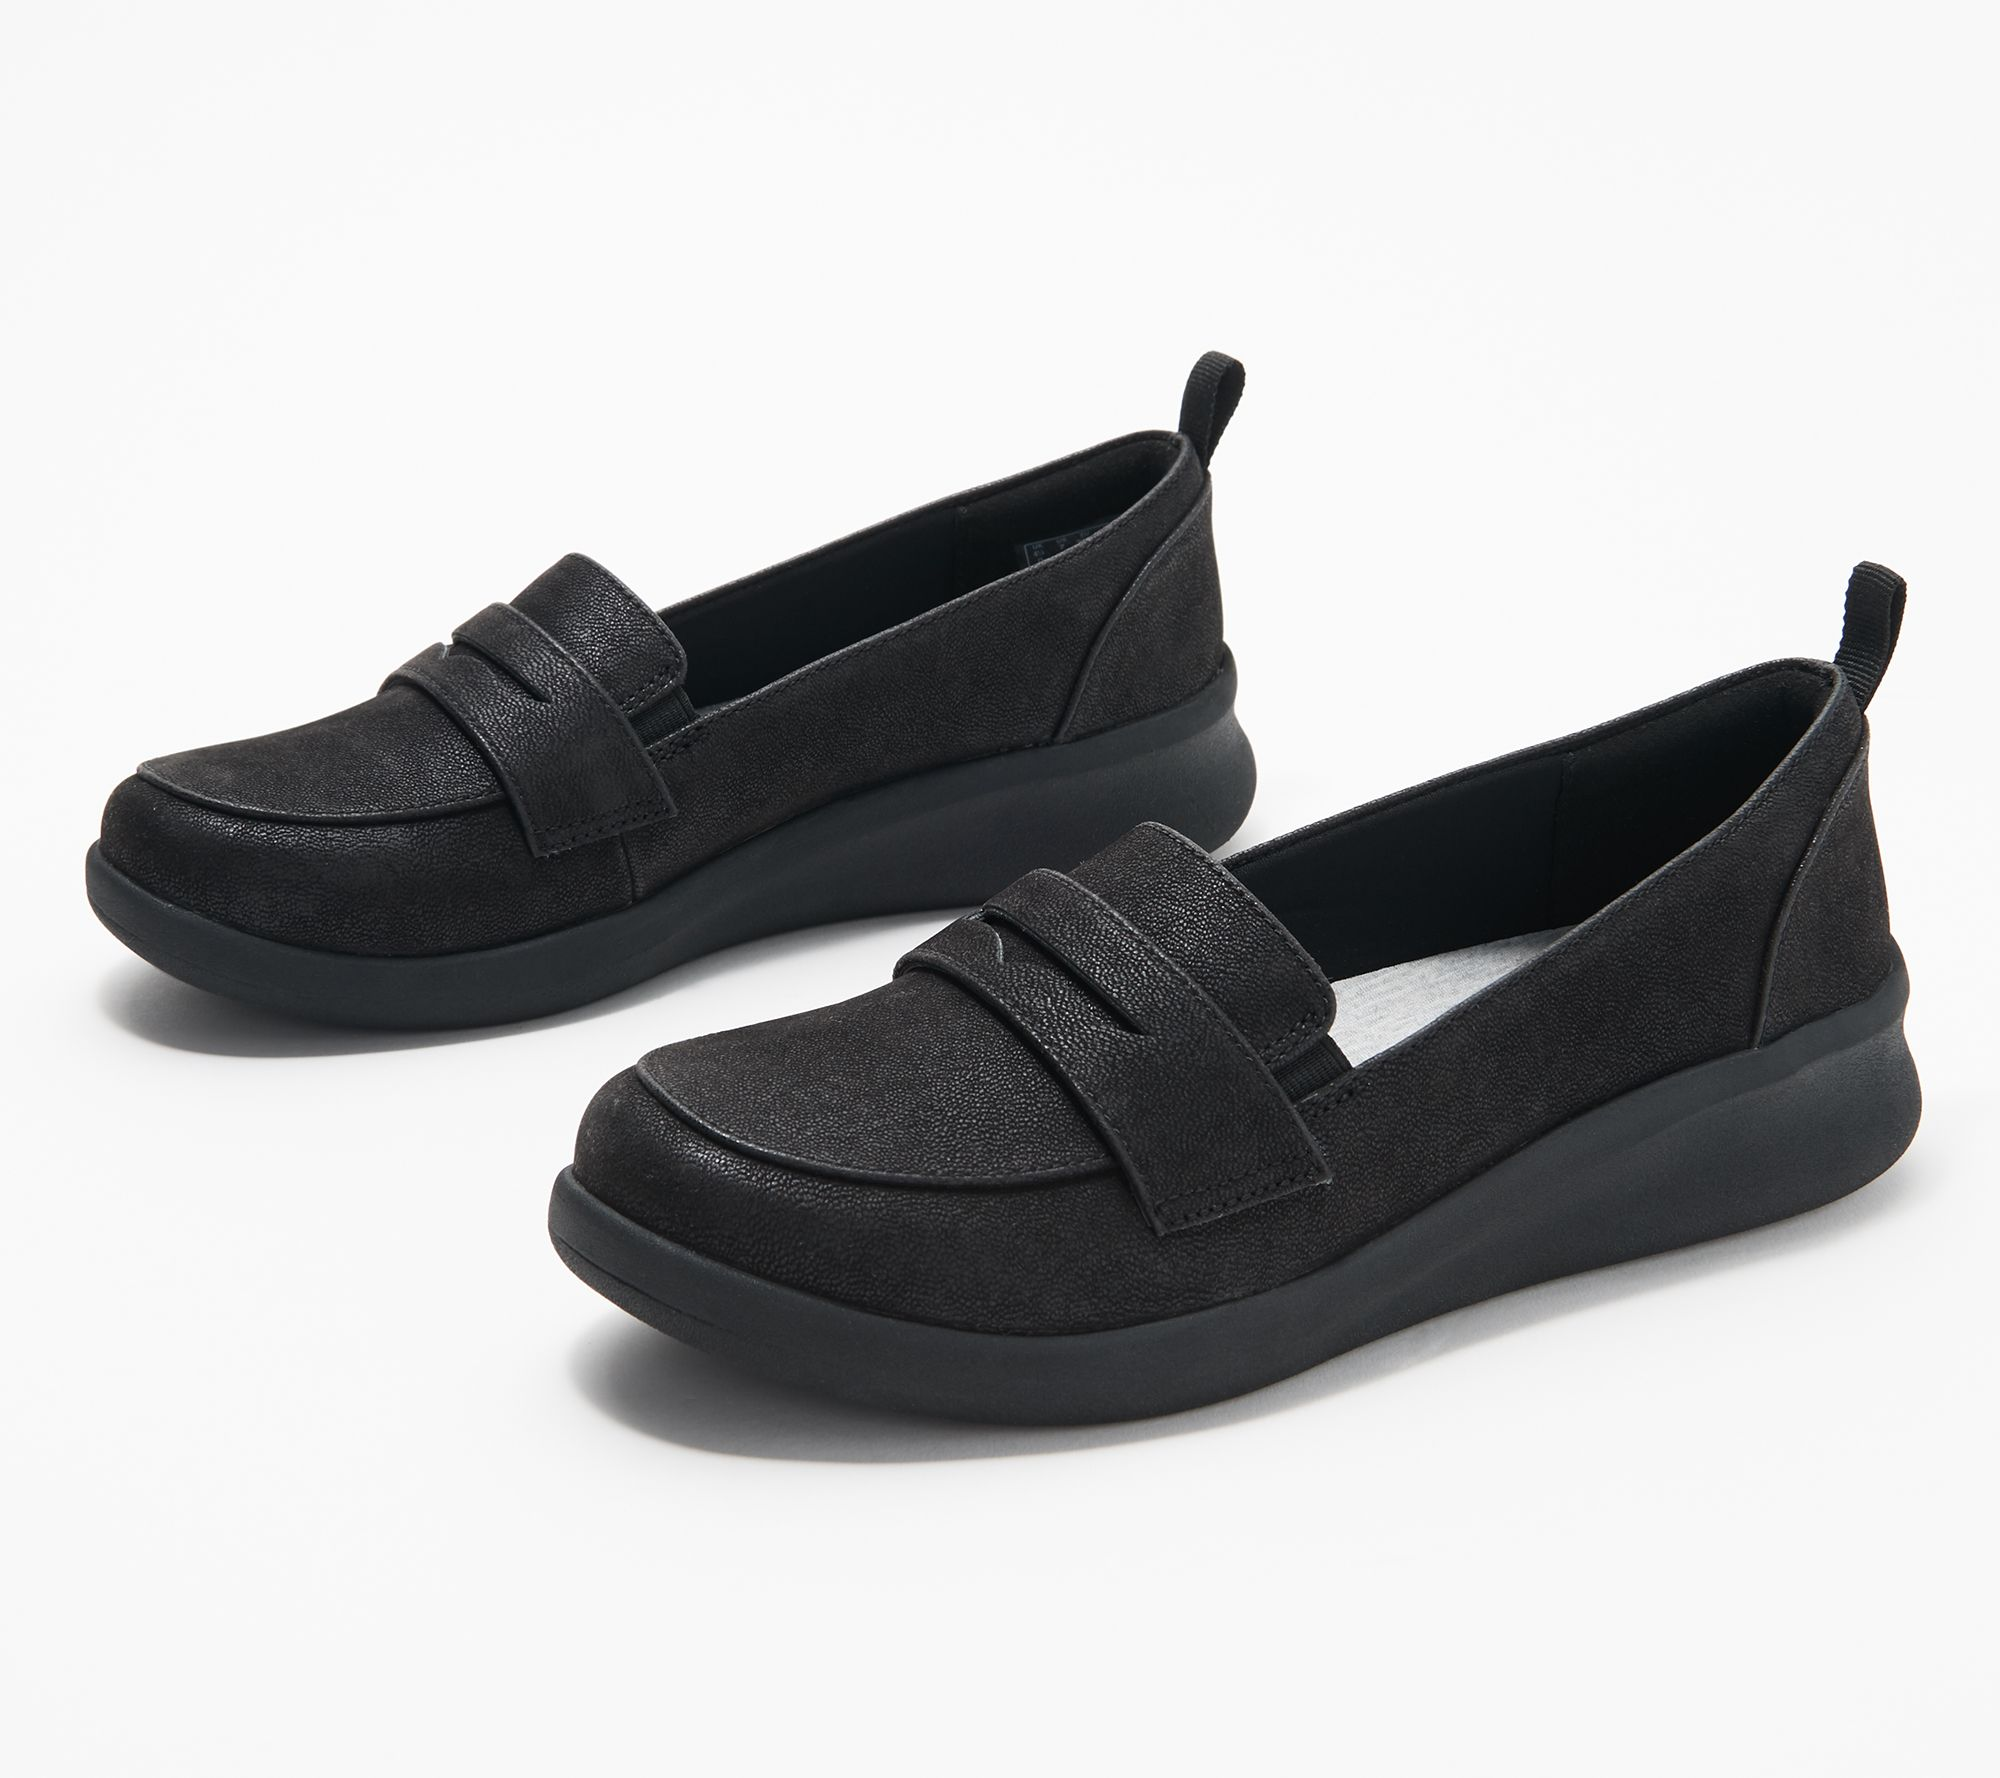 CLOUDSTEPPERS by Clarks Slip On Loafers Sillian 2.0 Hope —